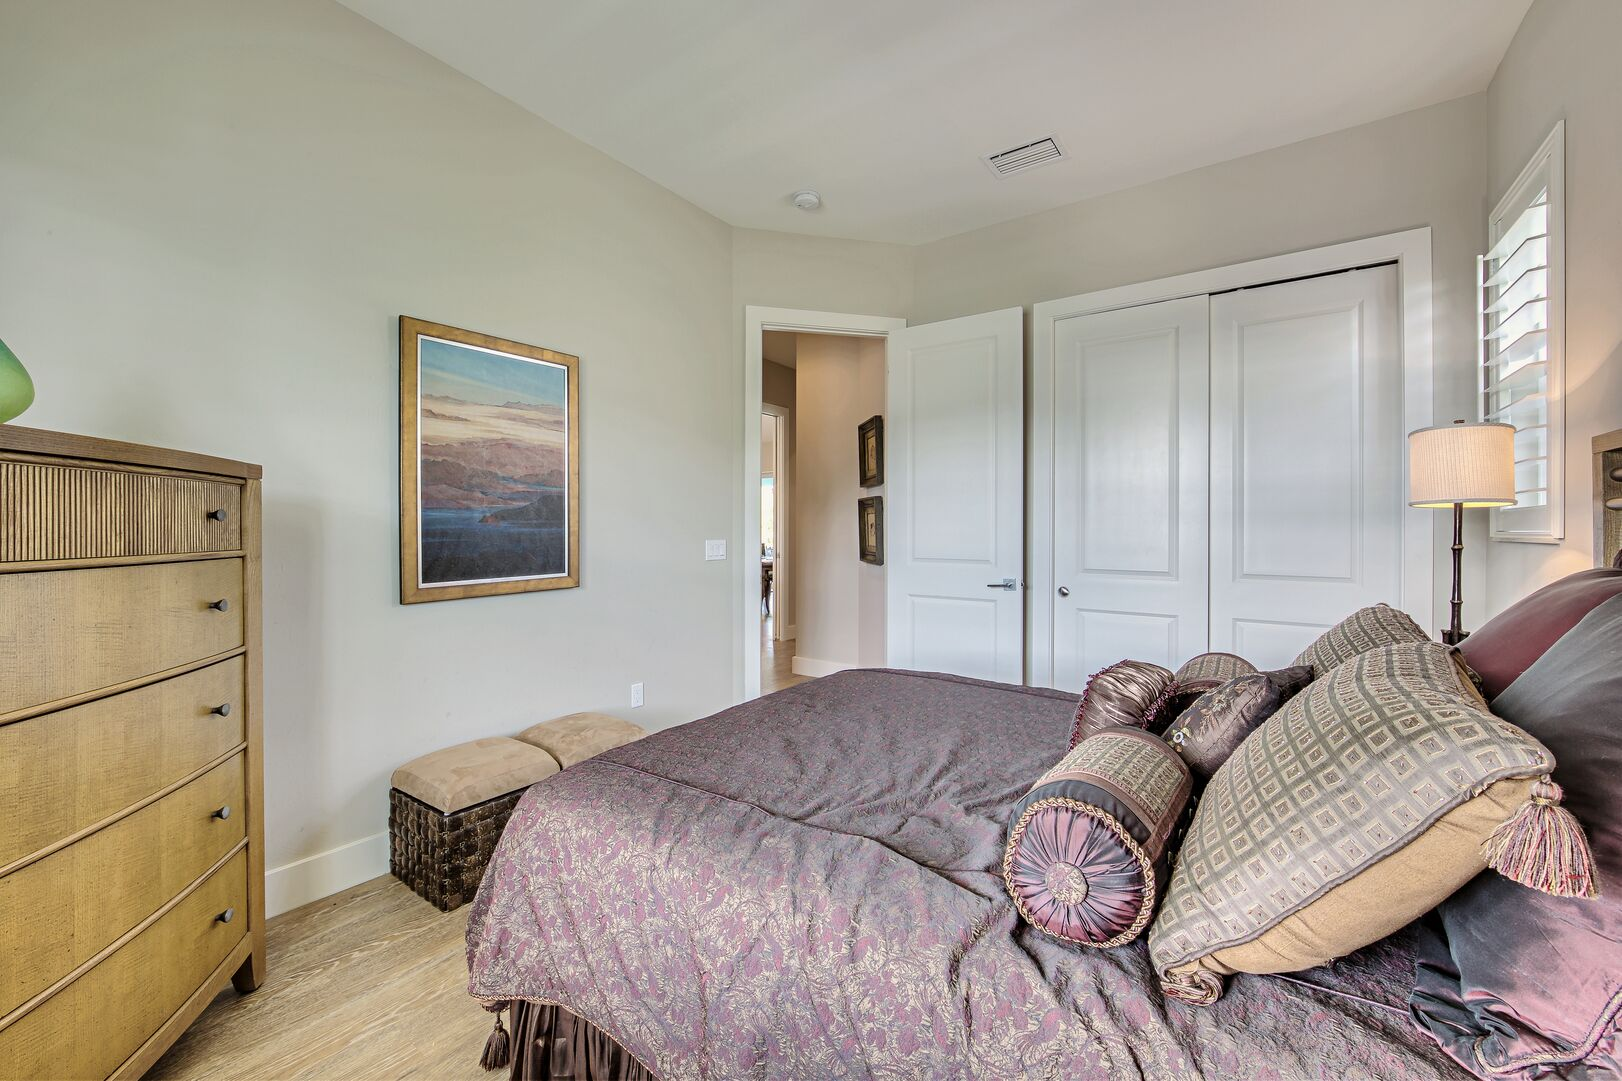 Bedroom with nearby closet